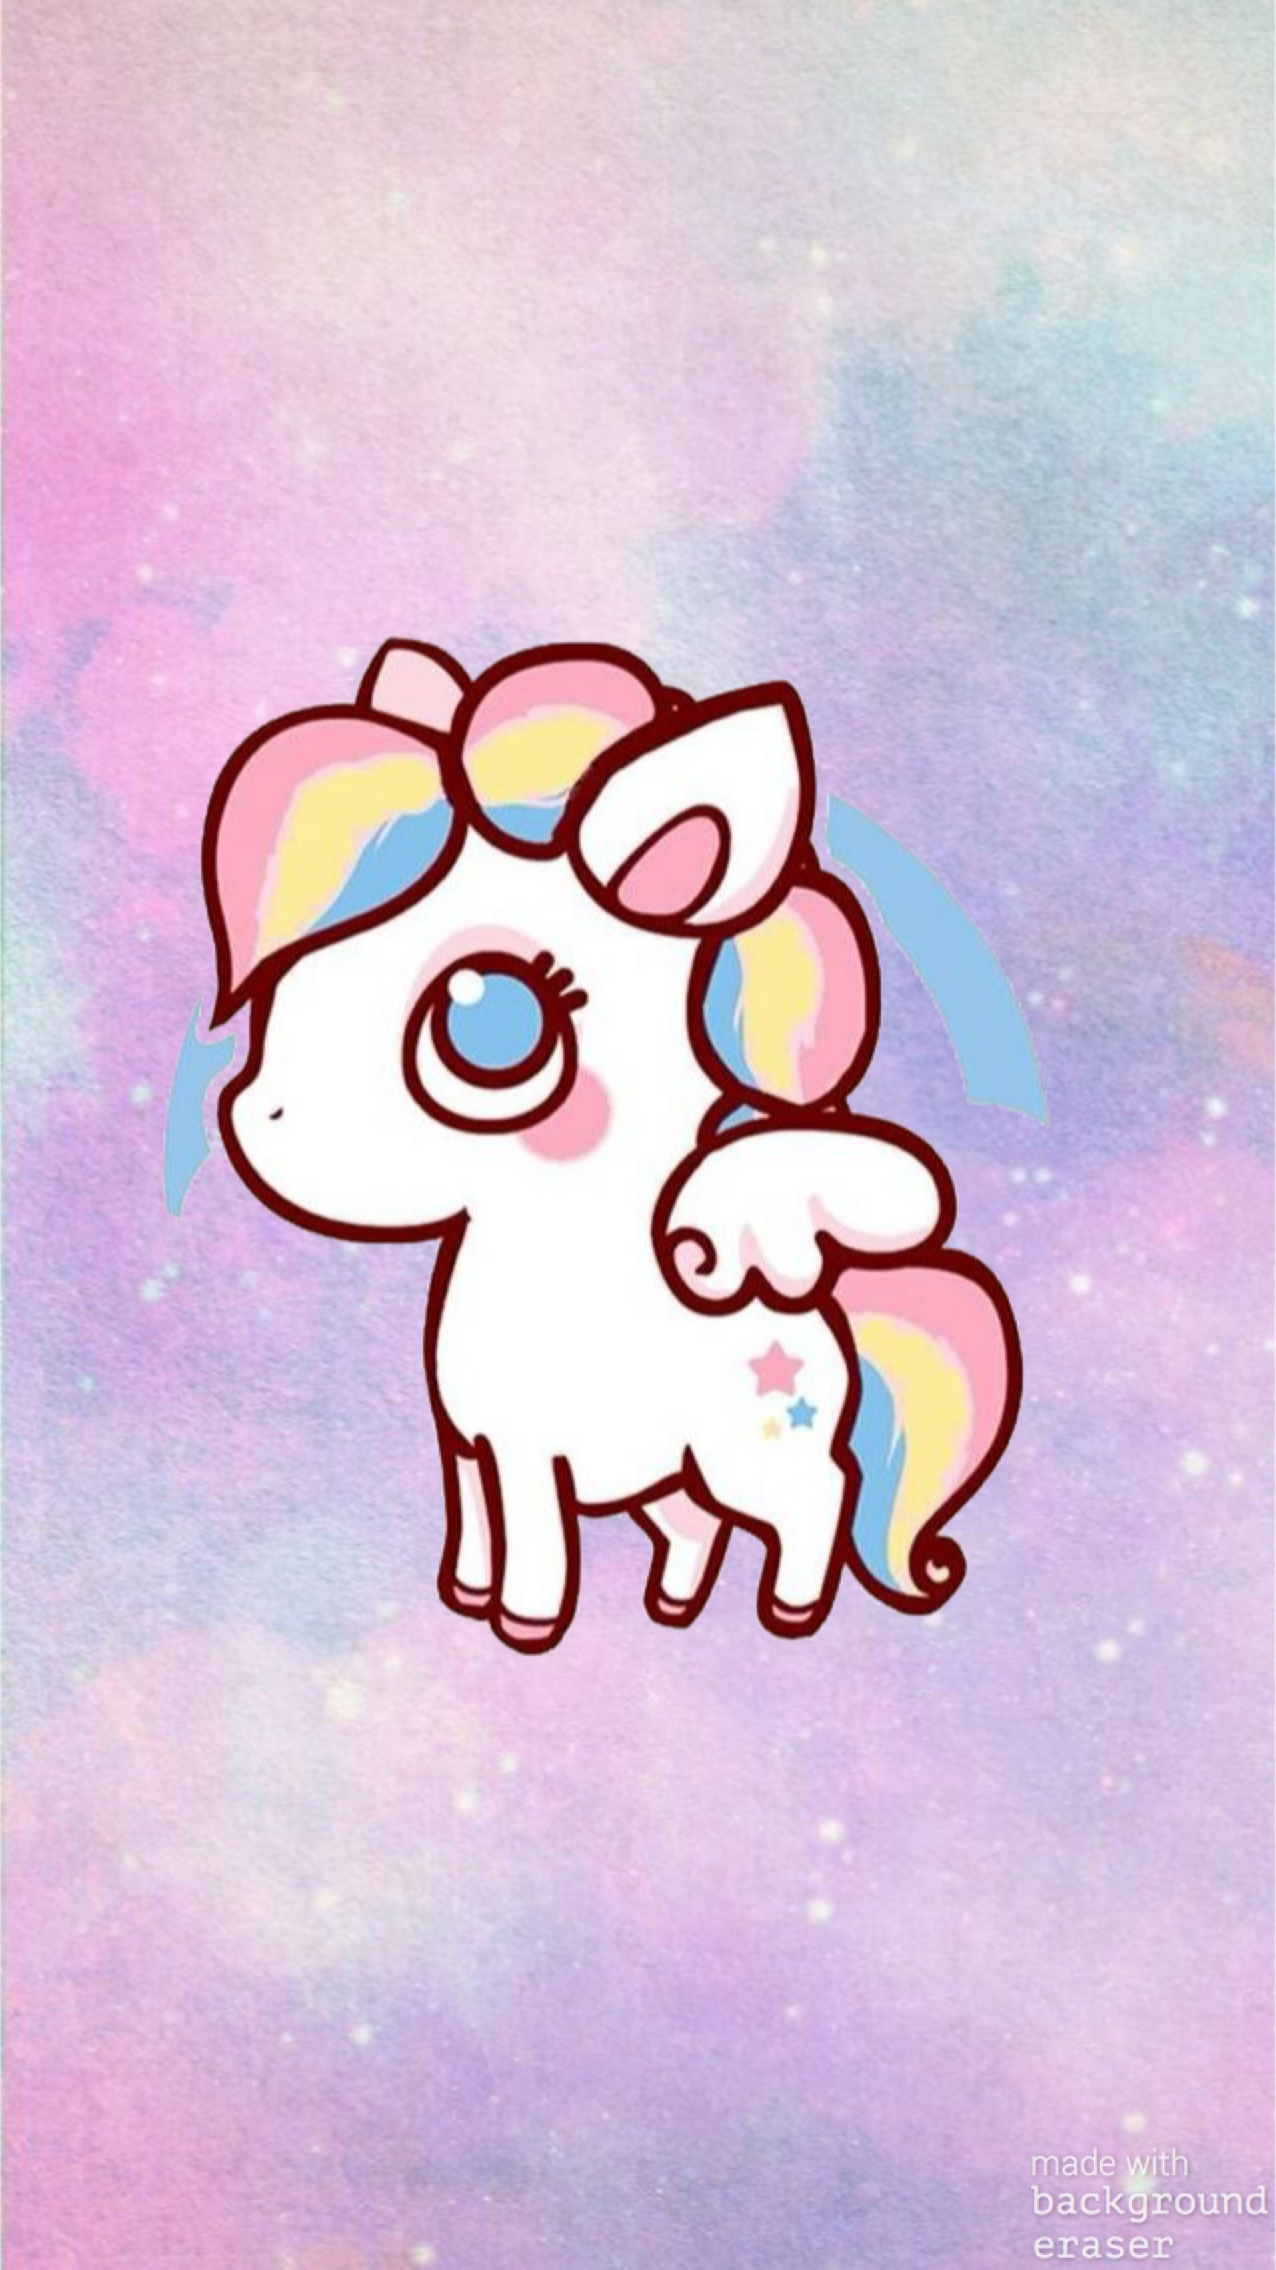 Pin By Moochers On Bay Max Unicorn Wallpaper Unicorn Illustration Kawaii Unicorn